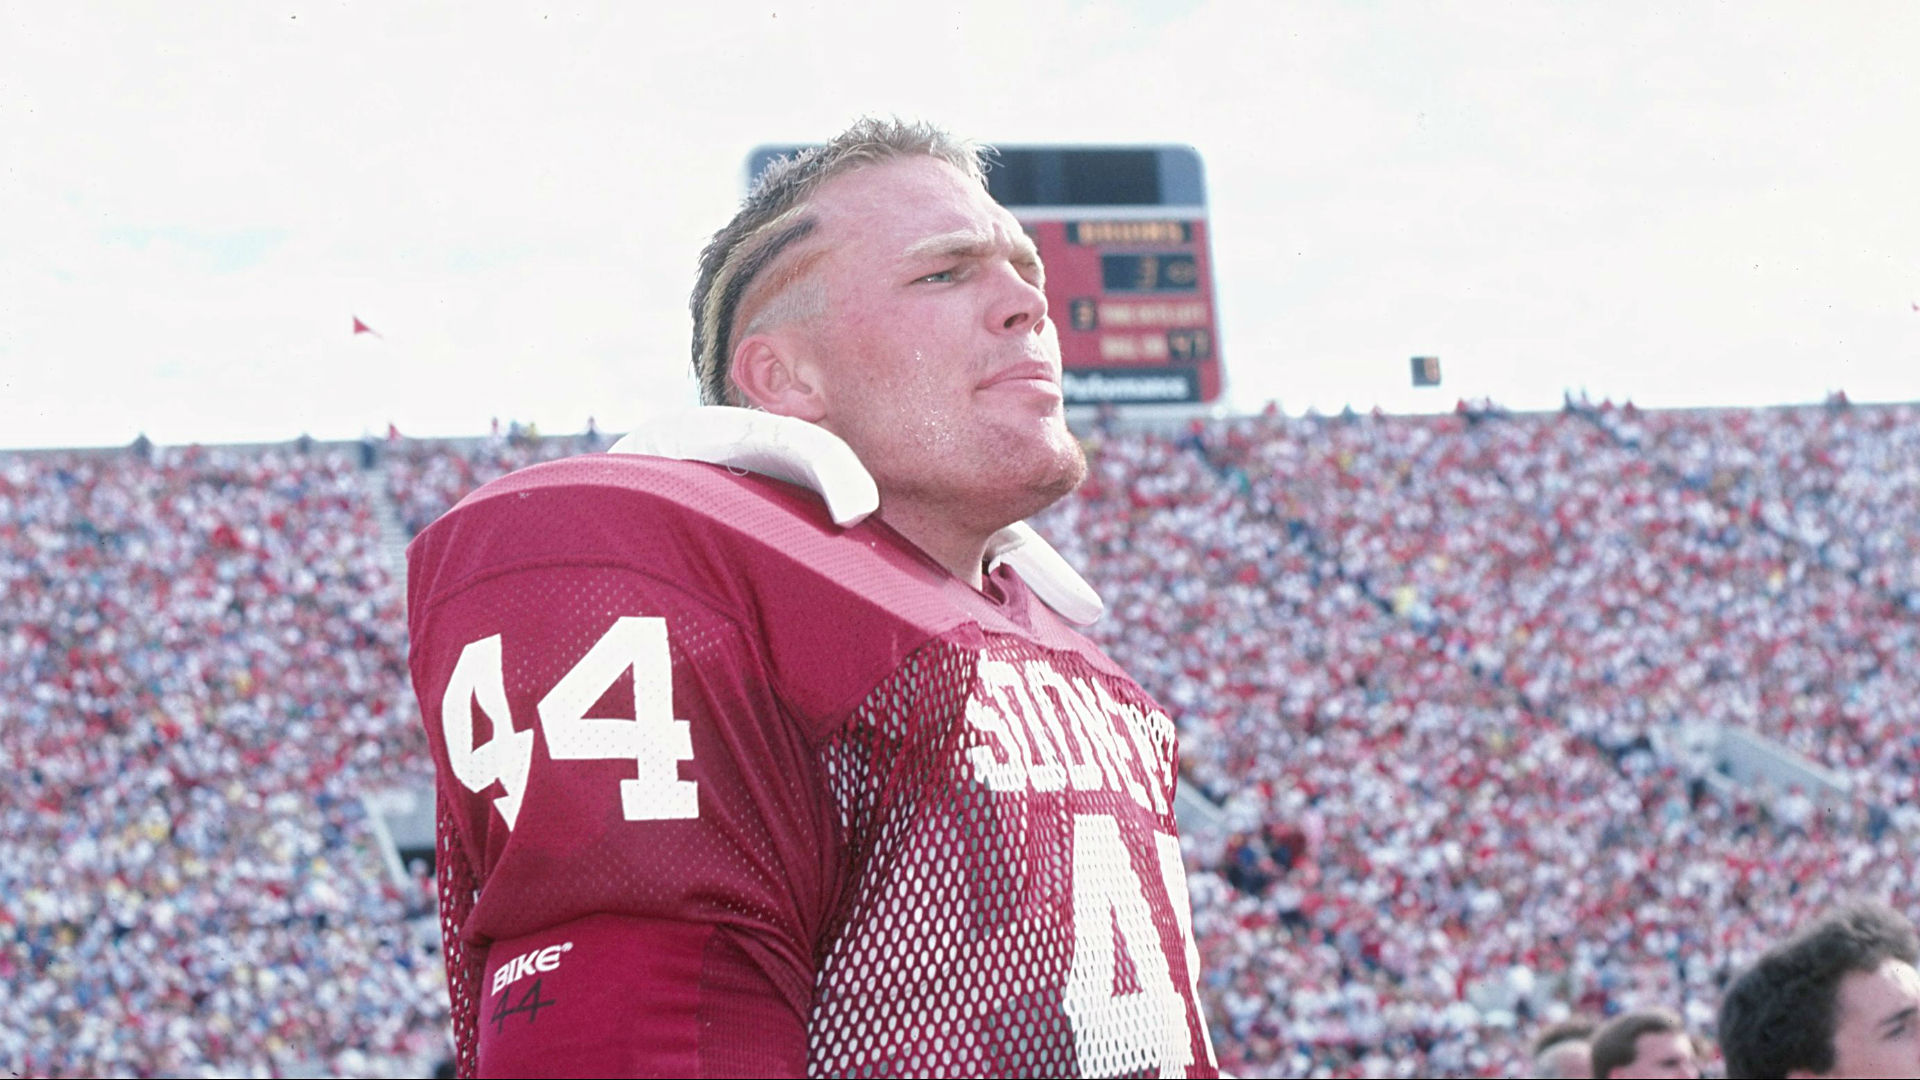 Oklahoma - The Boz2